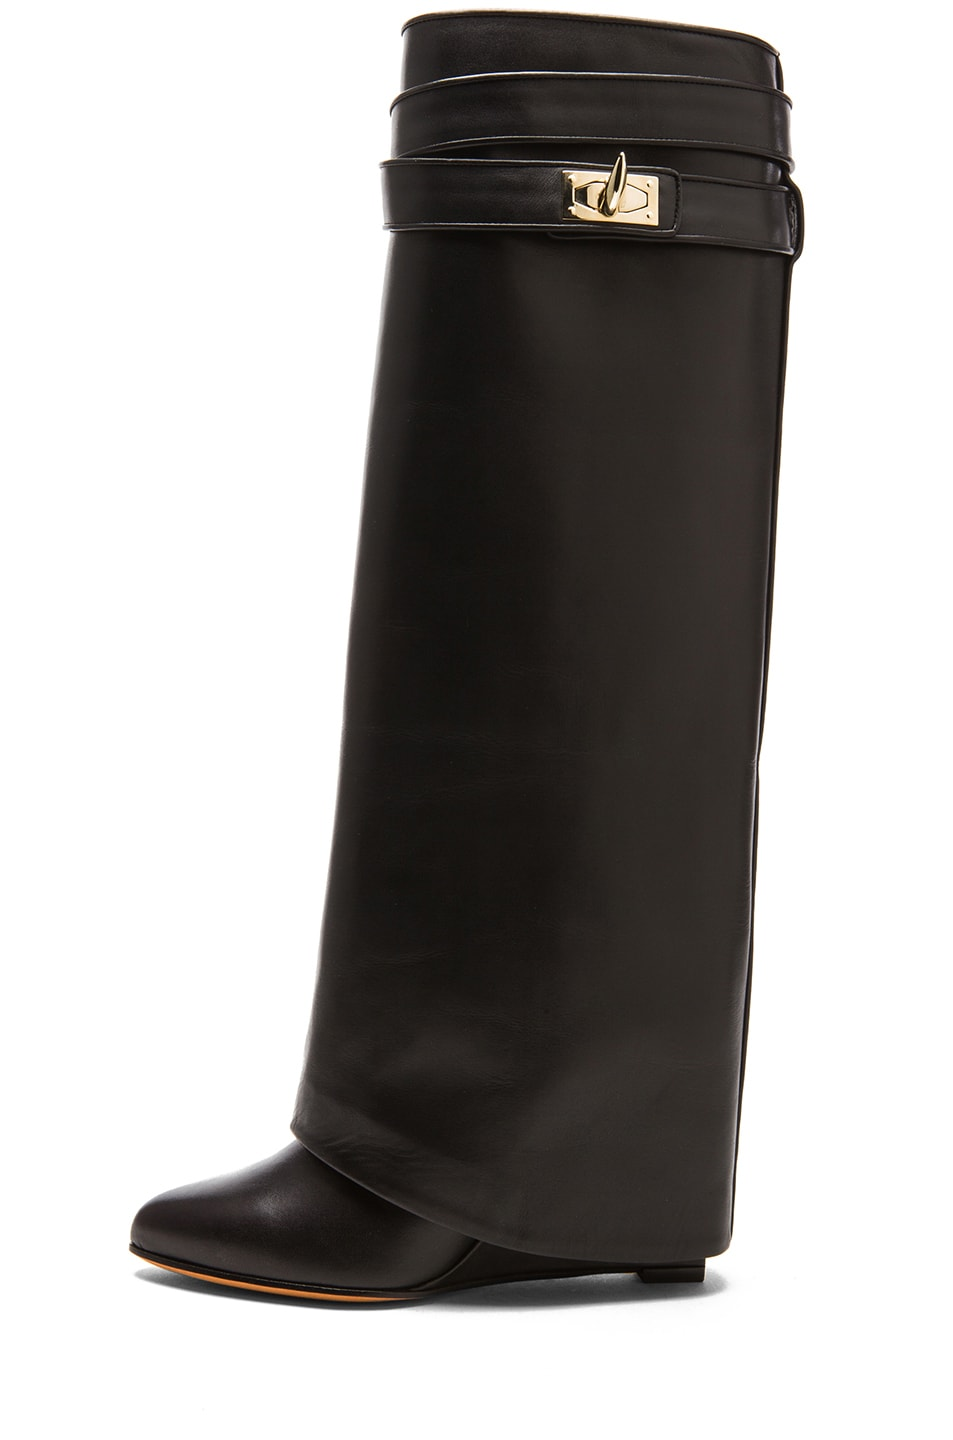 Image 1 of GIVENCHY Shark Lock Tall Leather Pant Boots in Black